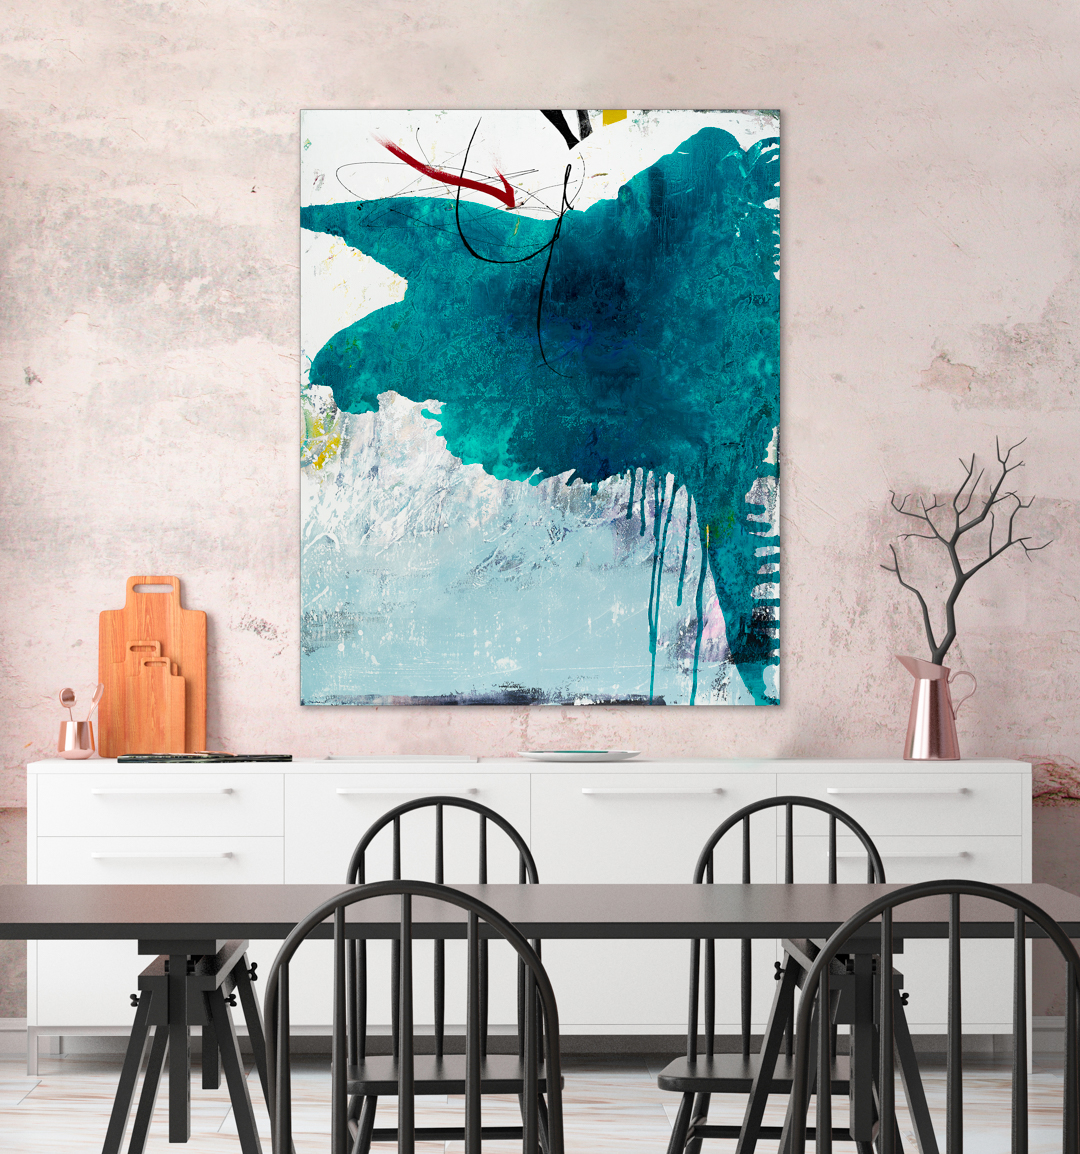 Large colorful modern contemporary painting urban industrial loft art graffiti street edge Laura Letchinger DEPOT